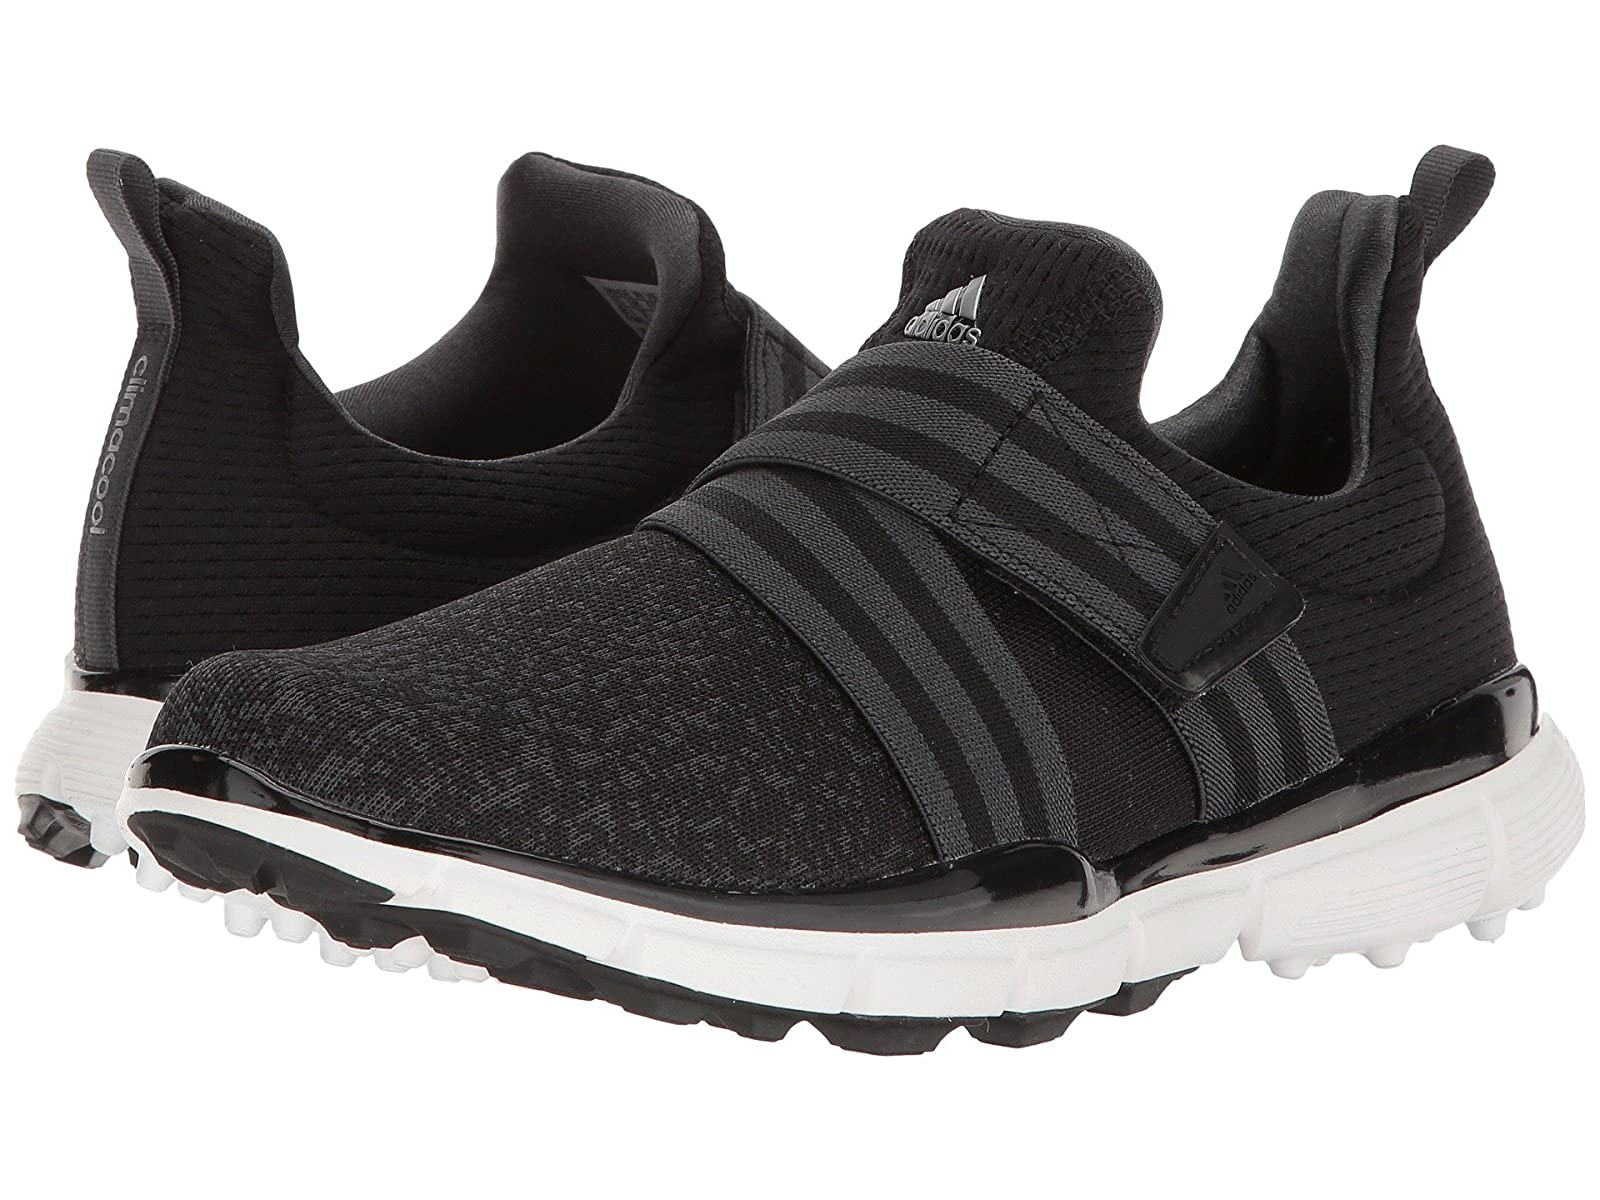 adidas Golf Climacool KnitAtmospheric grades have affordable shoes